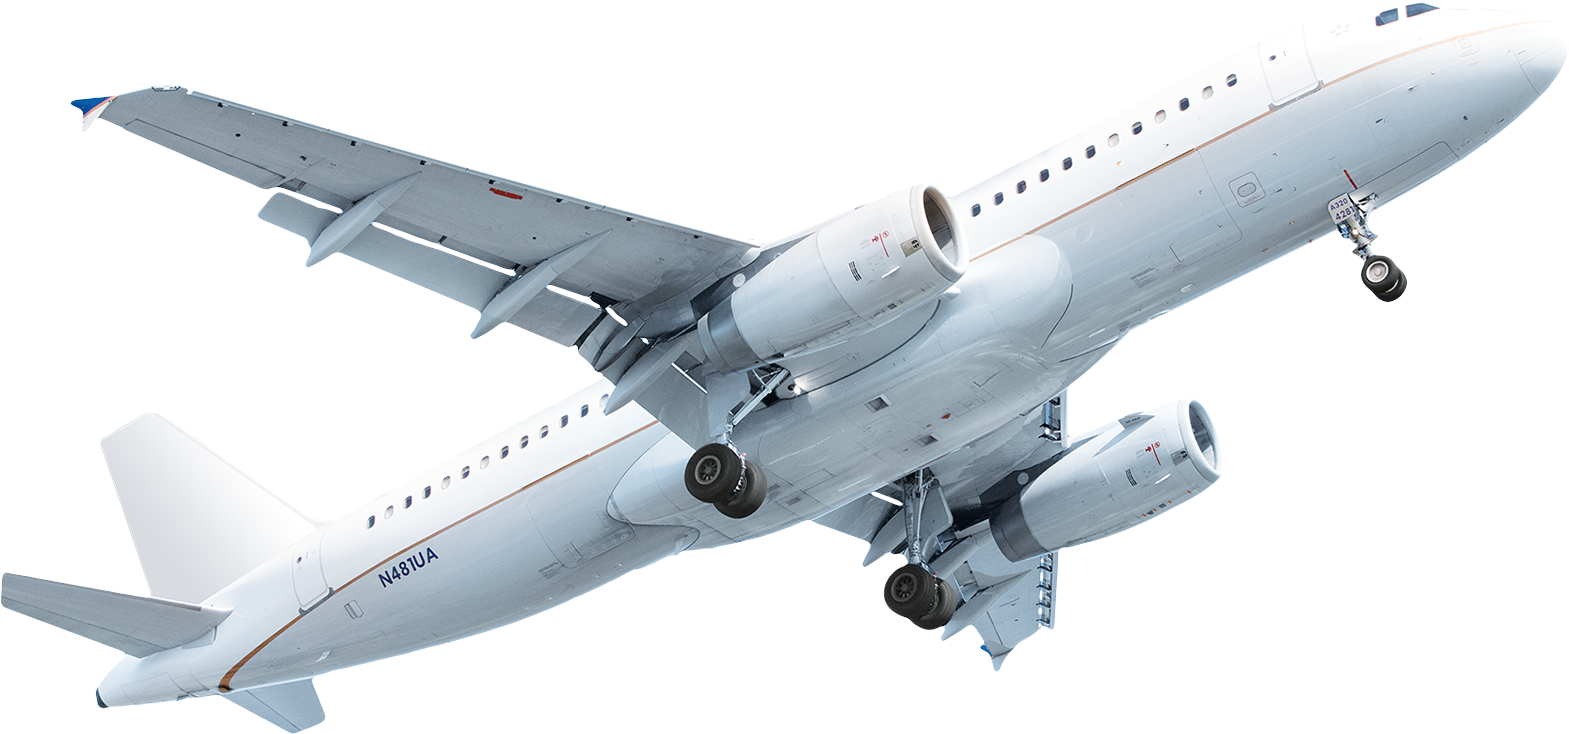 planes png images free download plane png photo